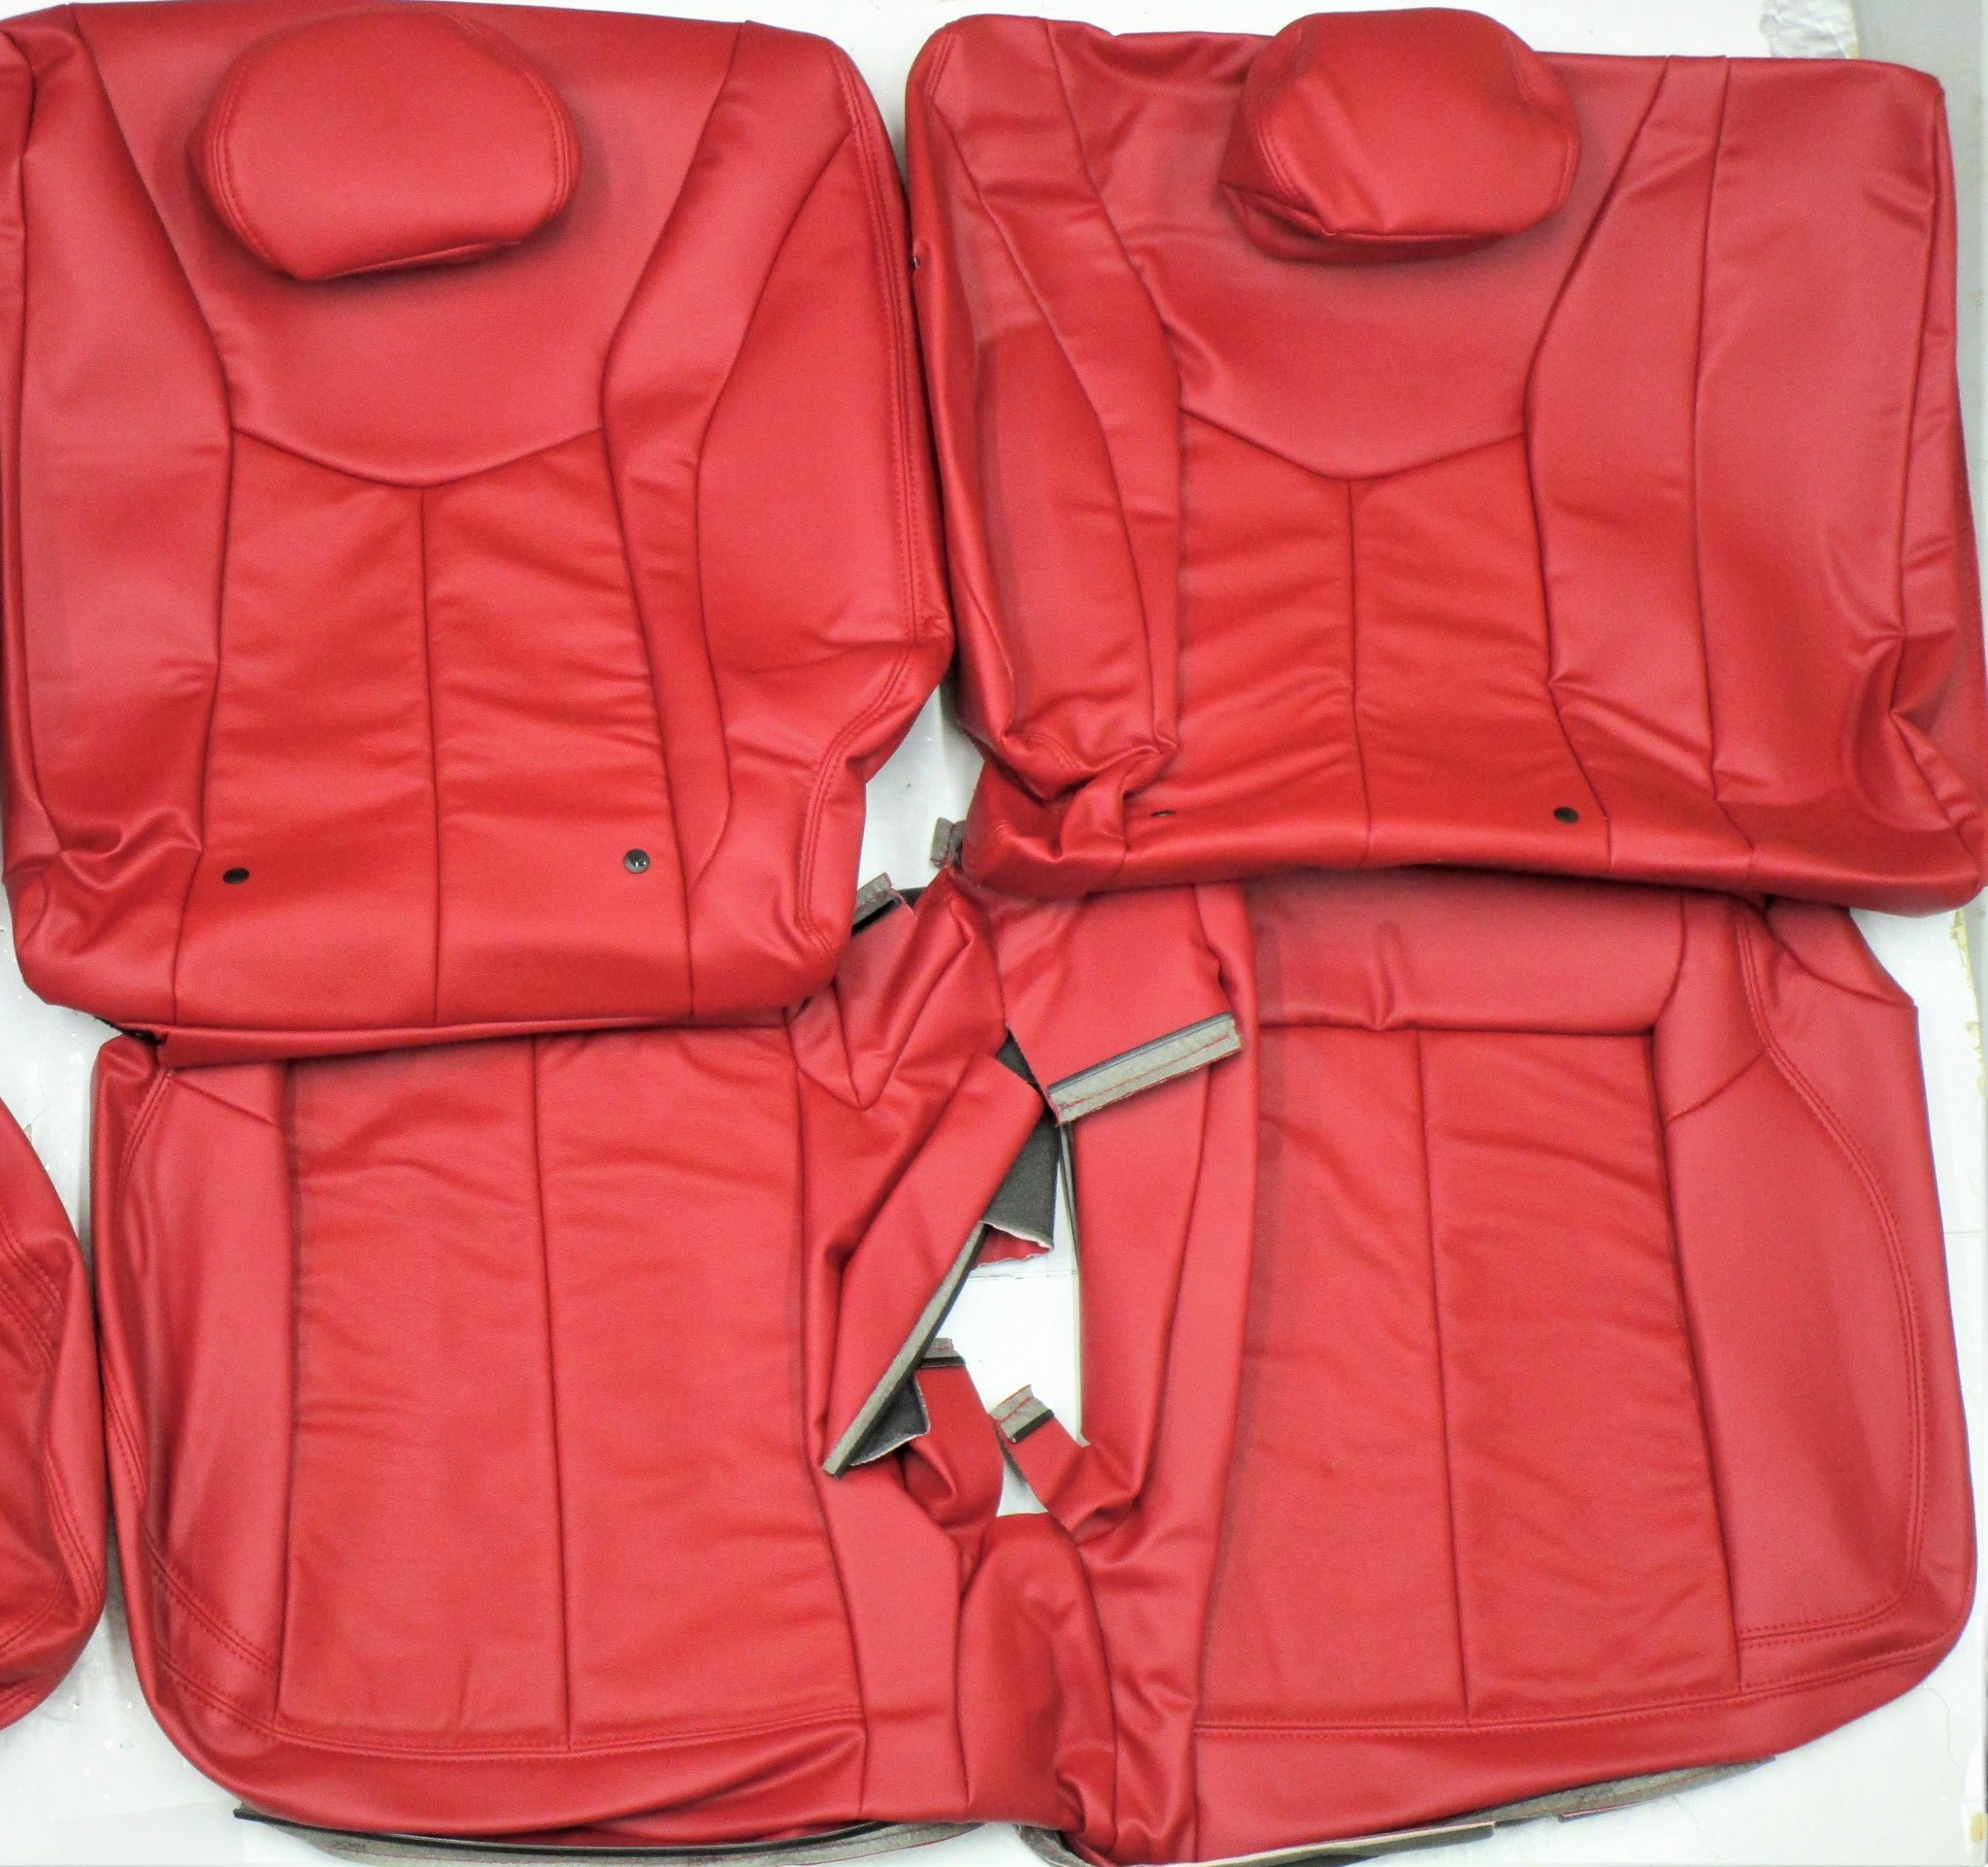 hyundai veloster leather seat covers